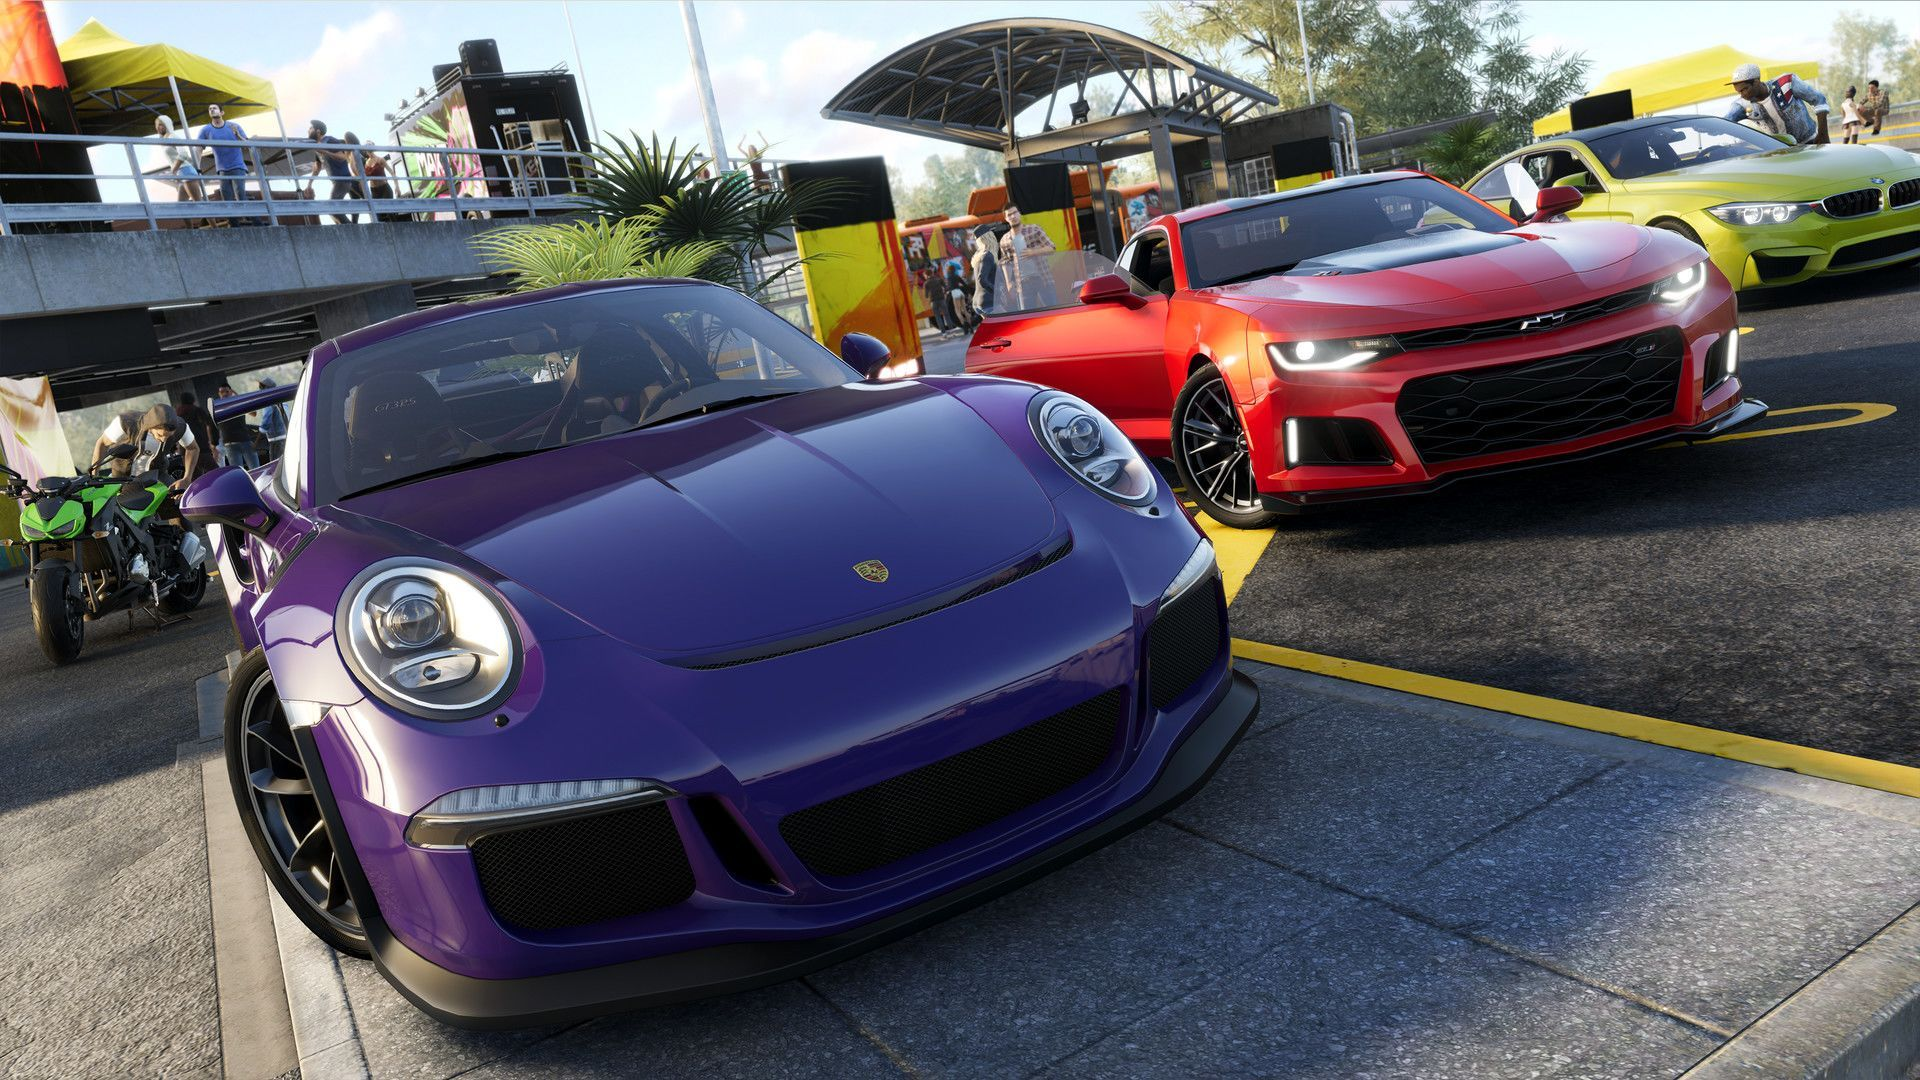 The Crew 2 Take To The Roads To The Skies And To The Sea In The Crew 2 A Sequel To A Unique Racing Game From 2014 Improving I Motorsport Sports Vehicles